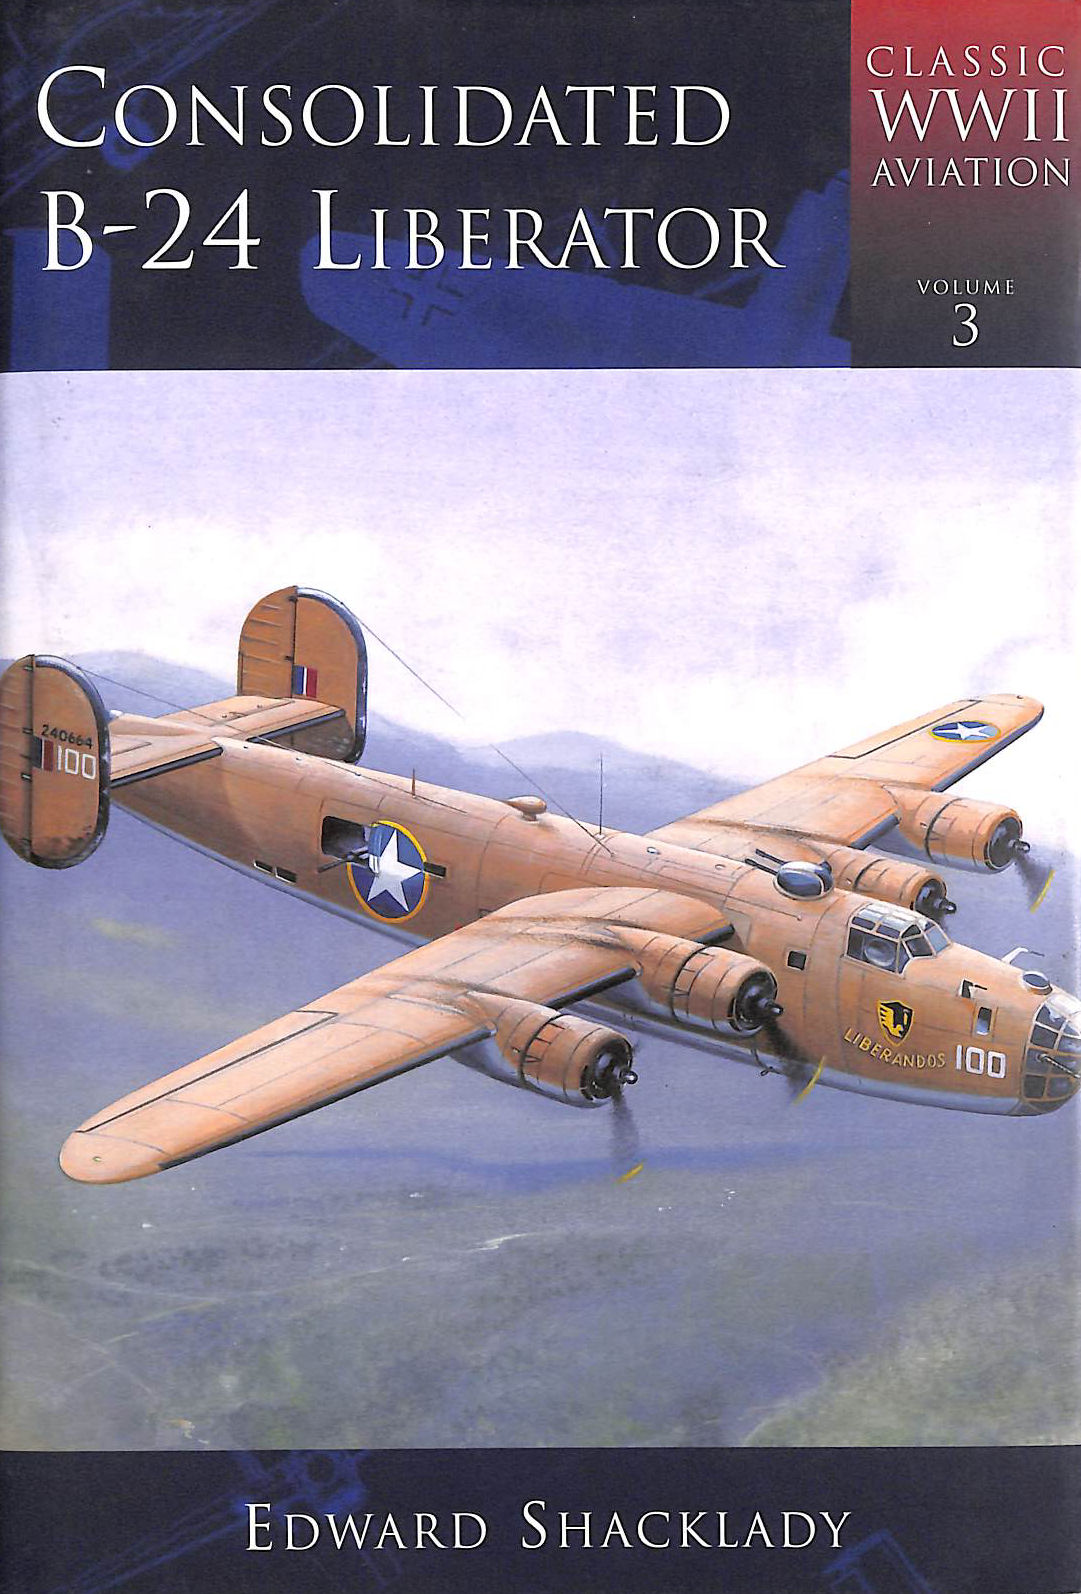 Image for B24 Liberator: Classic WWII Aircraft (Classic WWII aviation)